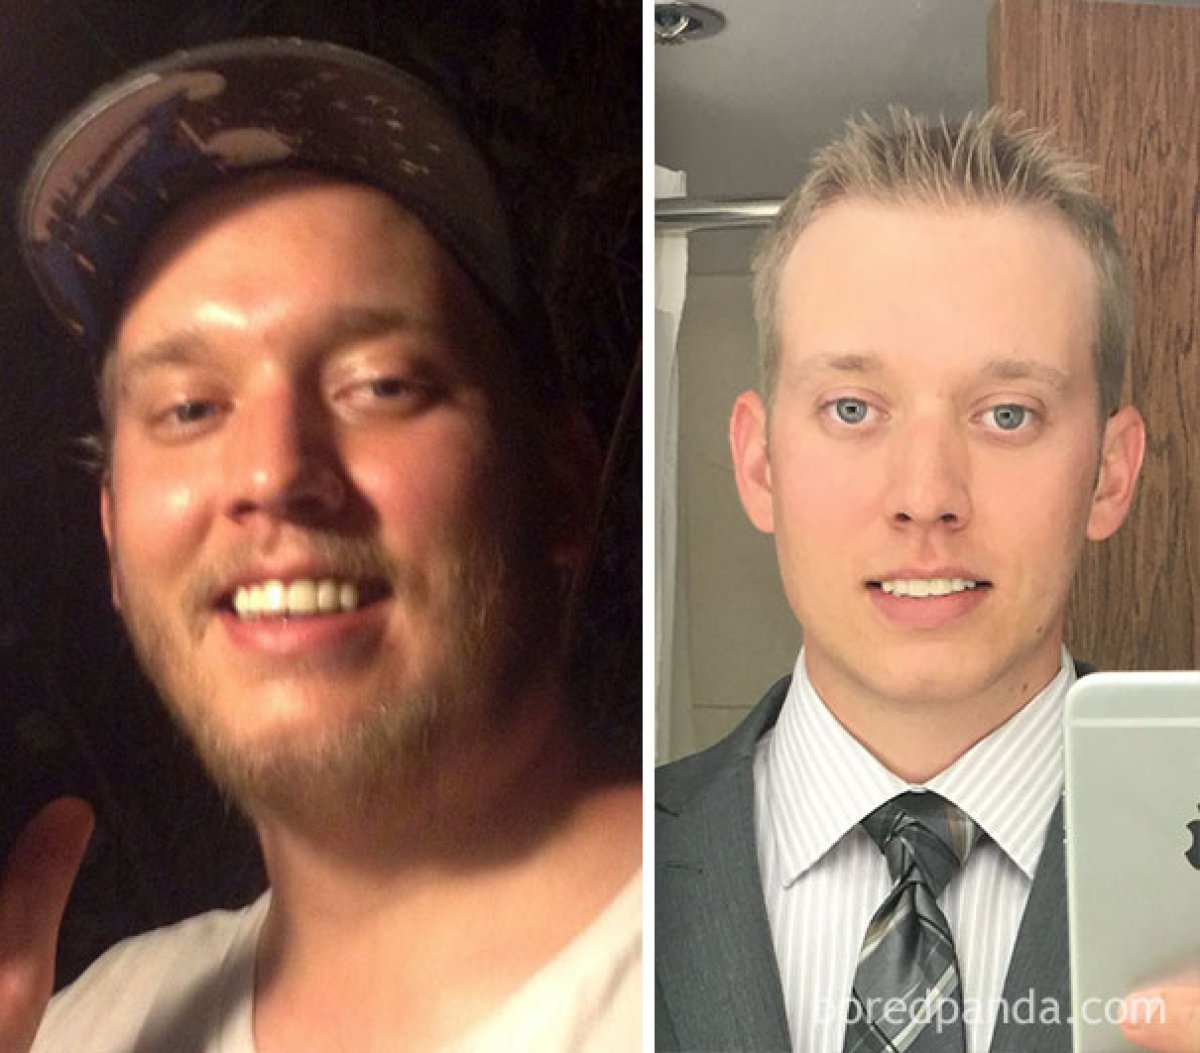 Before and after photos of alcoholics